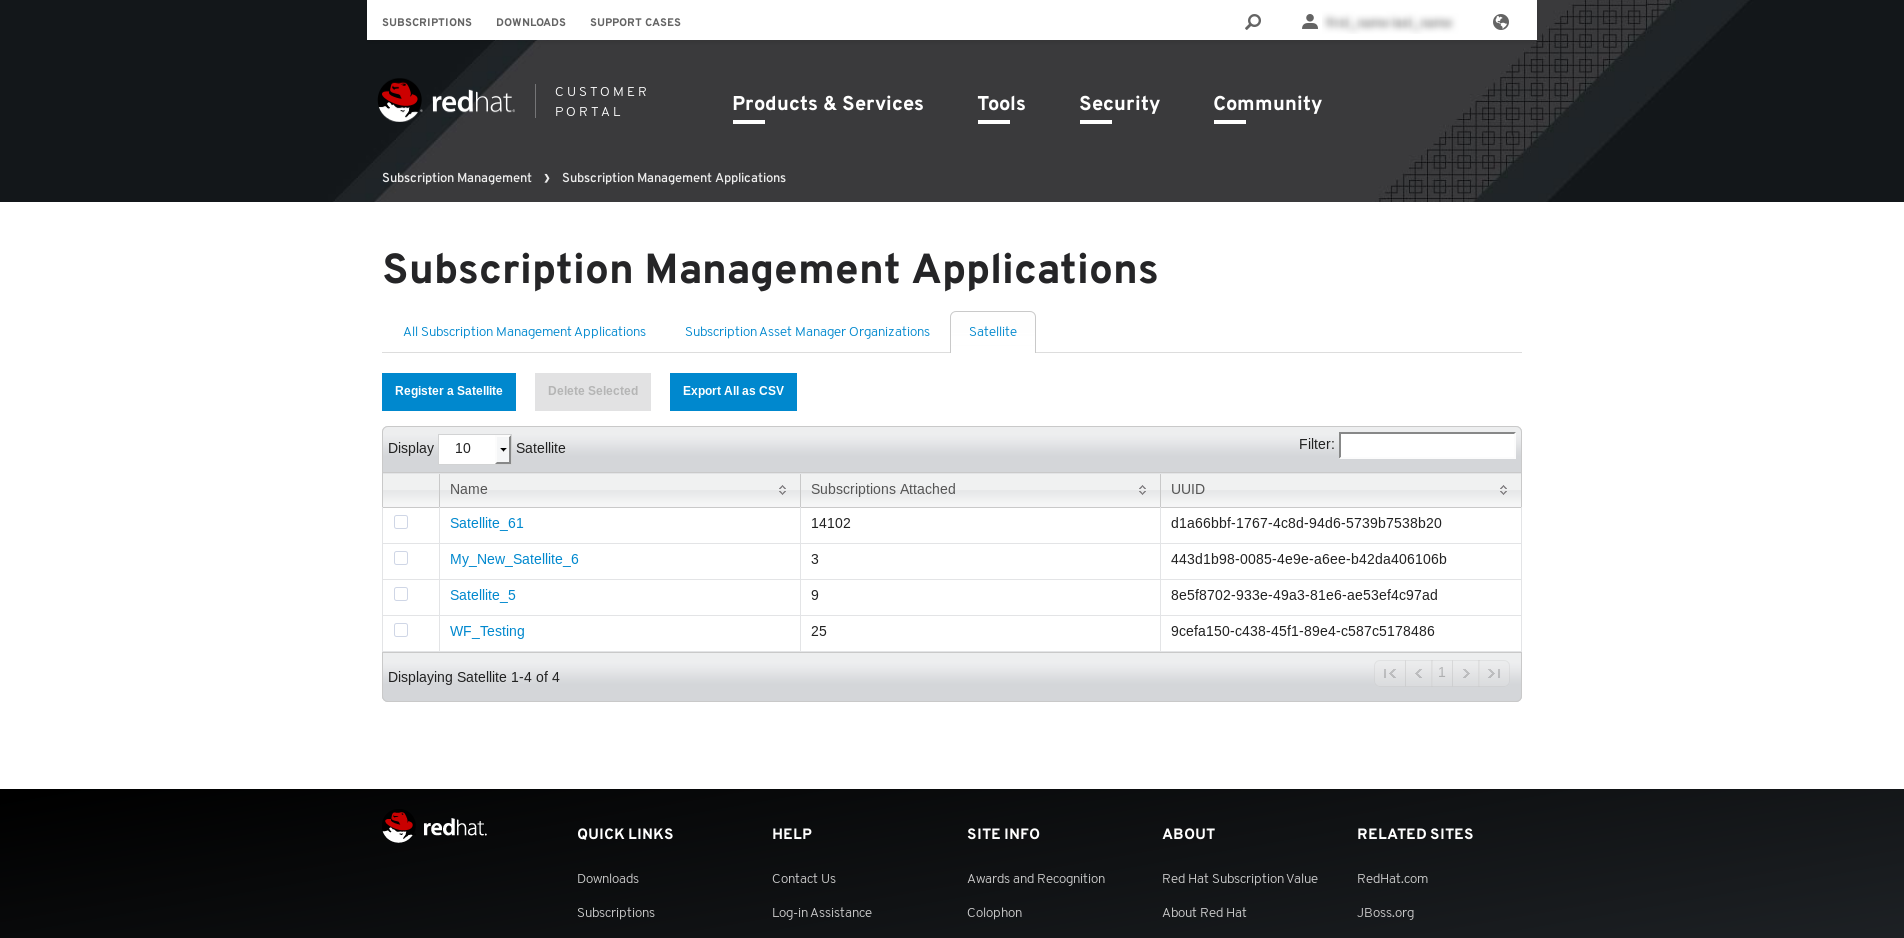 Subscription Management Applications